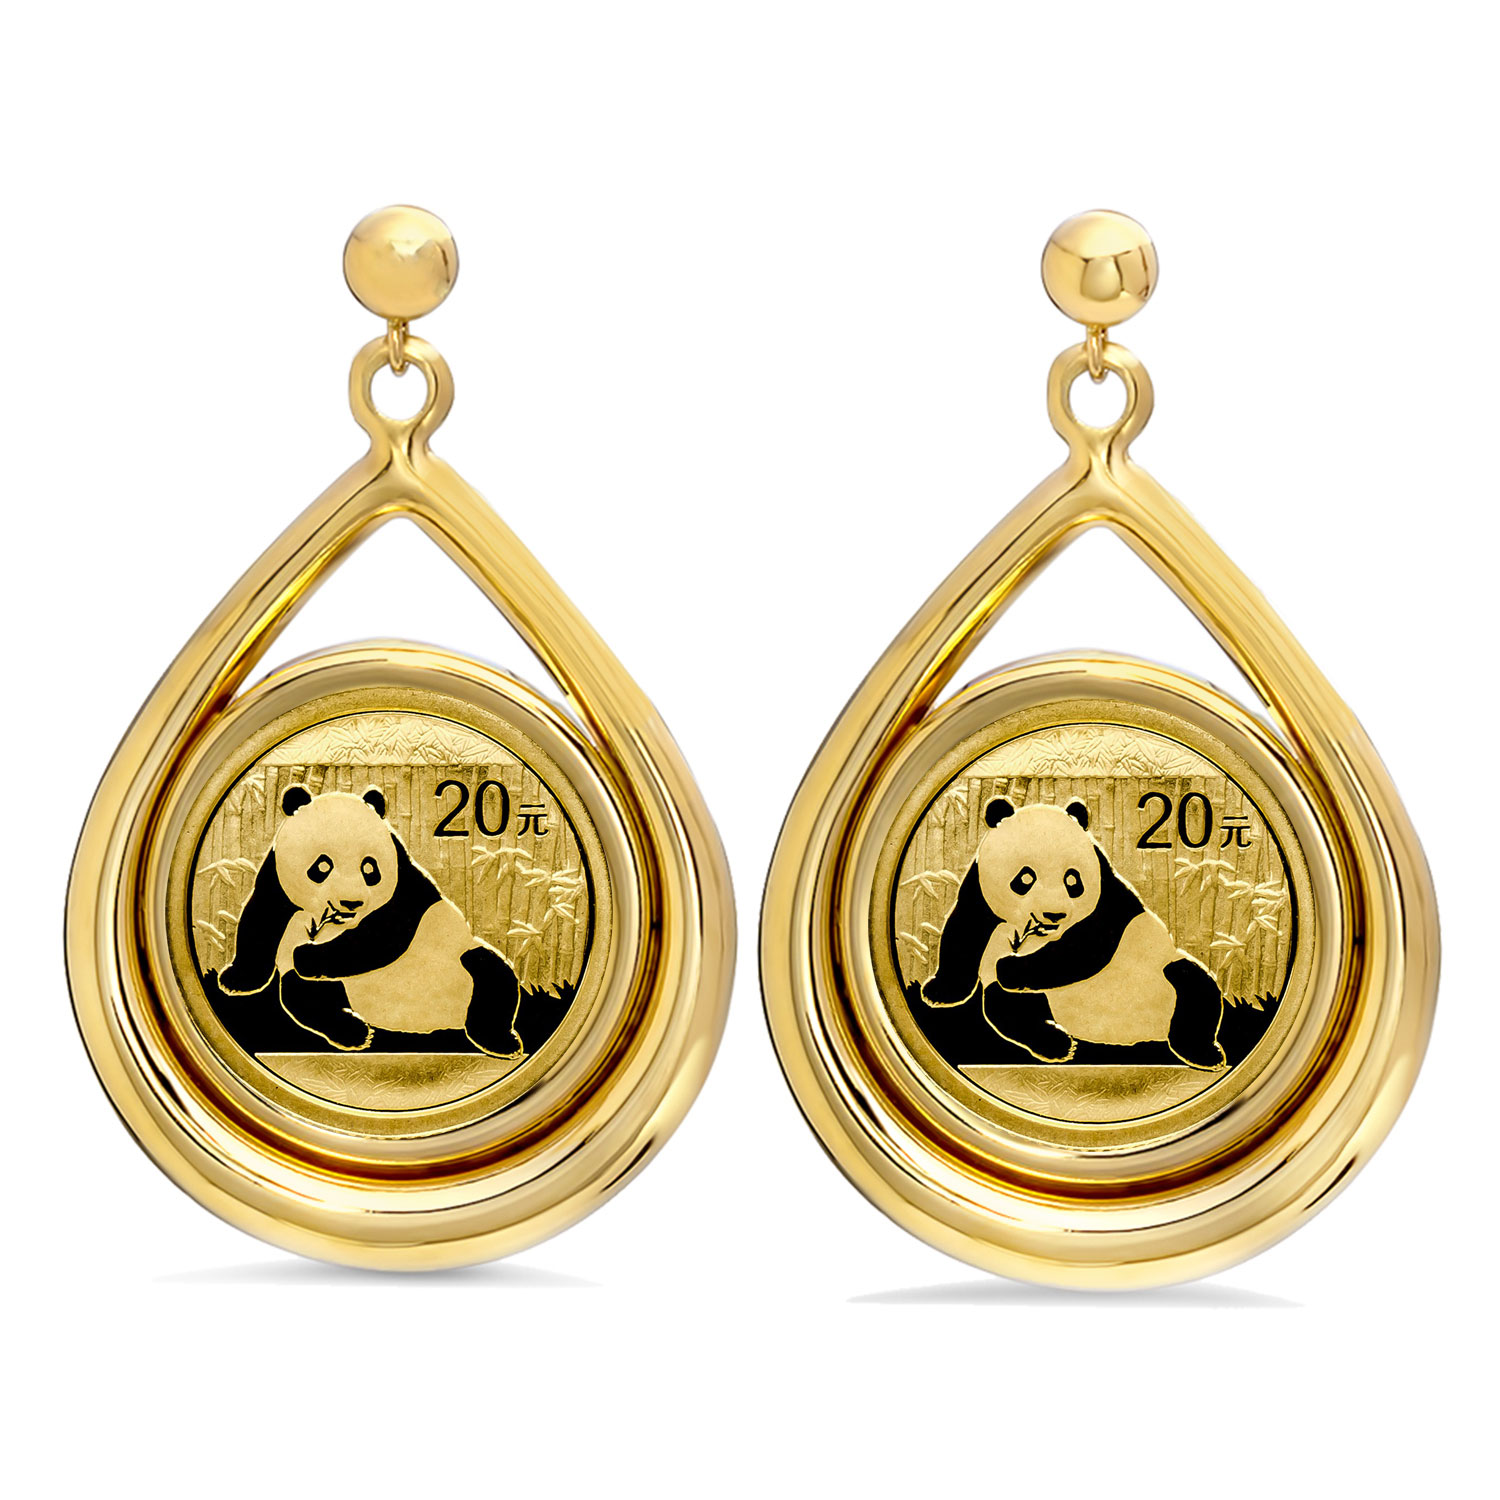 2015 1/20 oz Gold Panda Tear Drop Dangle Coin Earrings